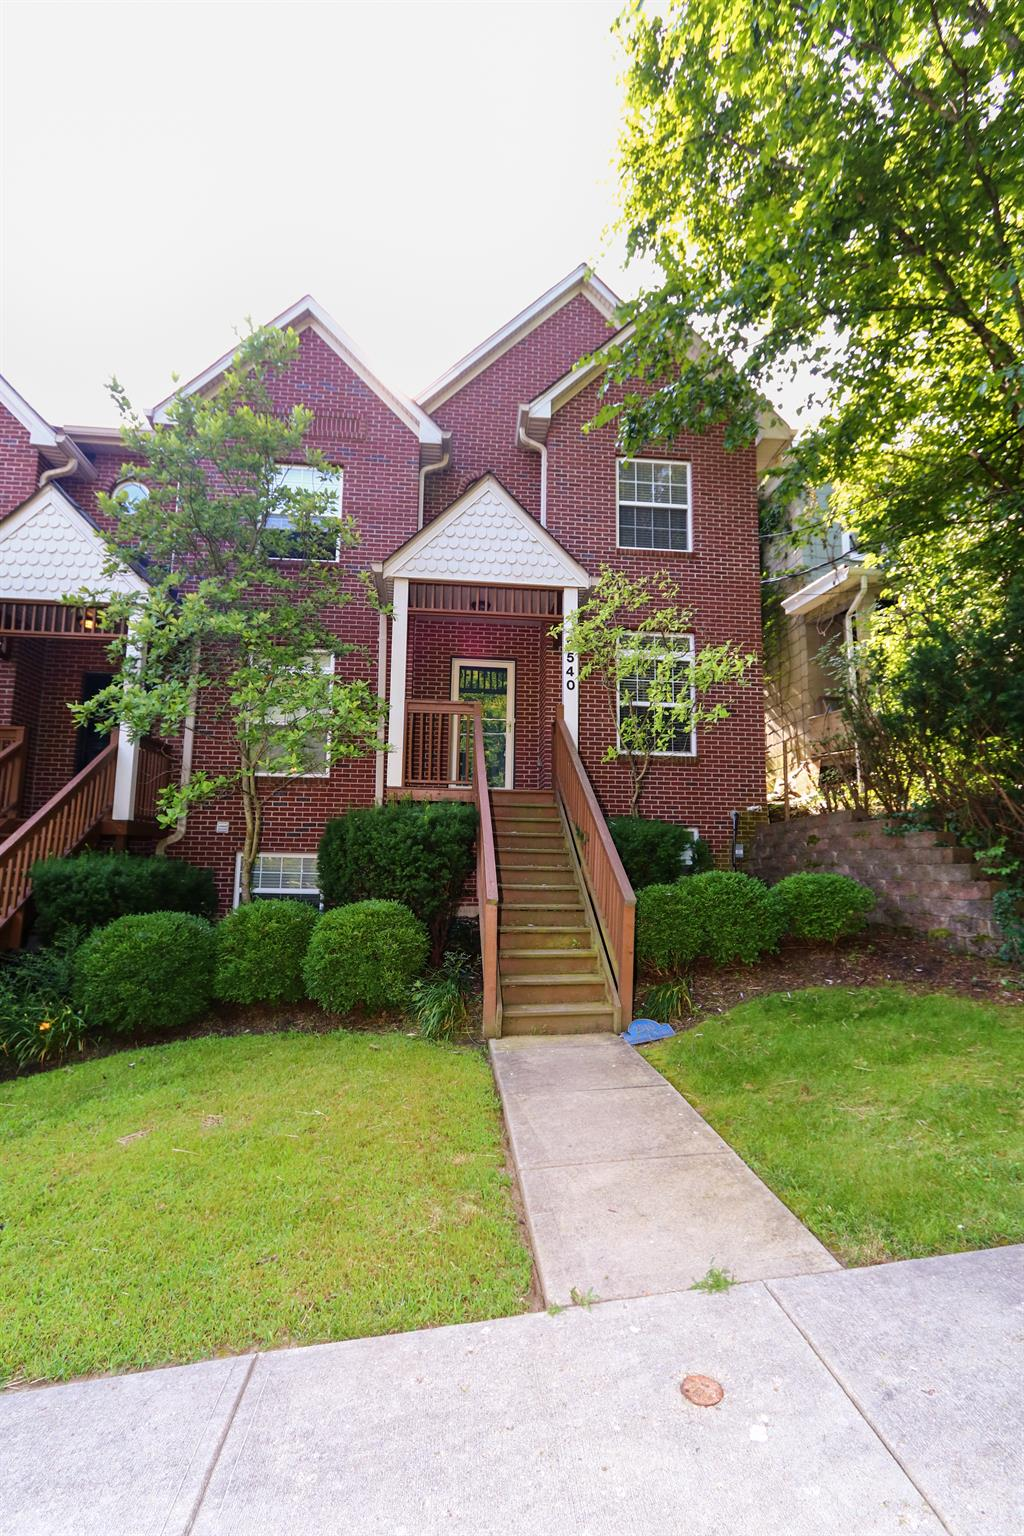 2540 Cleinview Ave Walnut Hills, OH